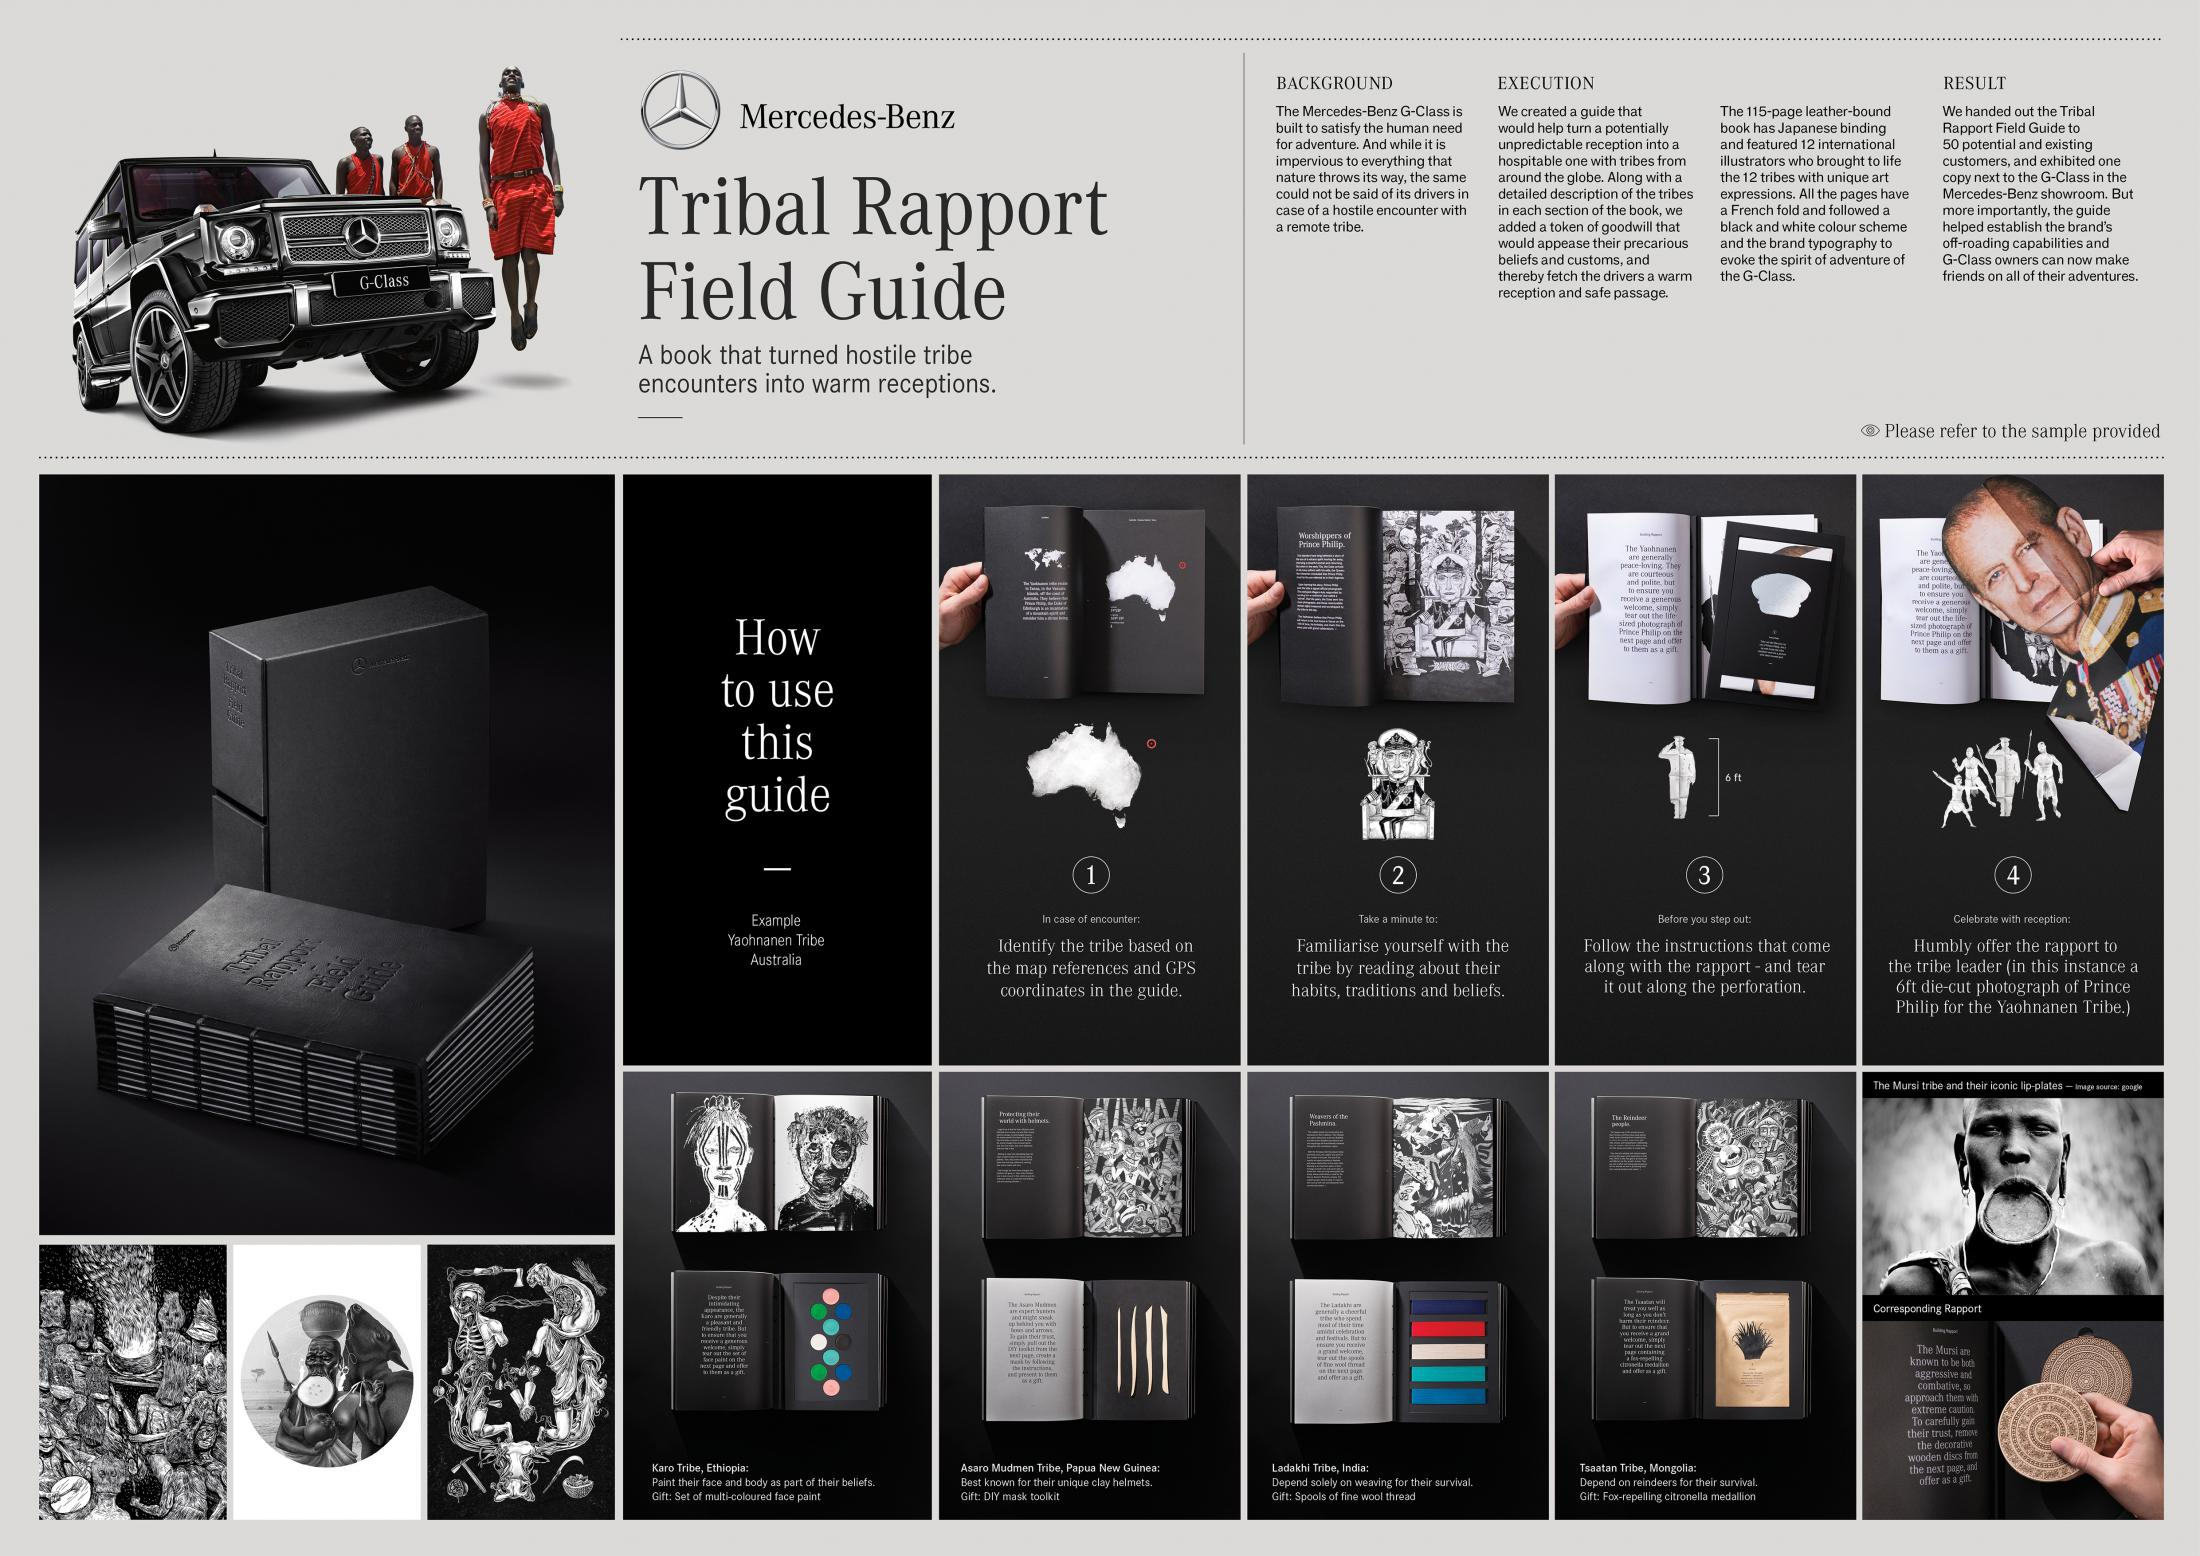 Image Media for The Tribal Rapport Field Guide